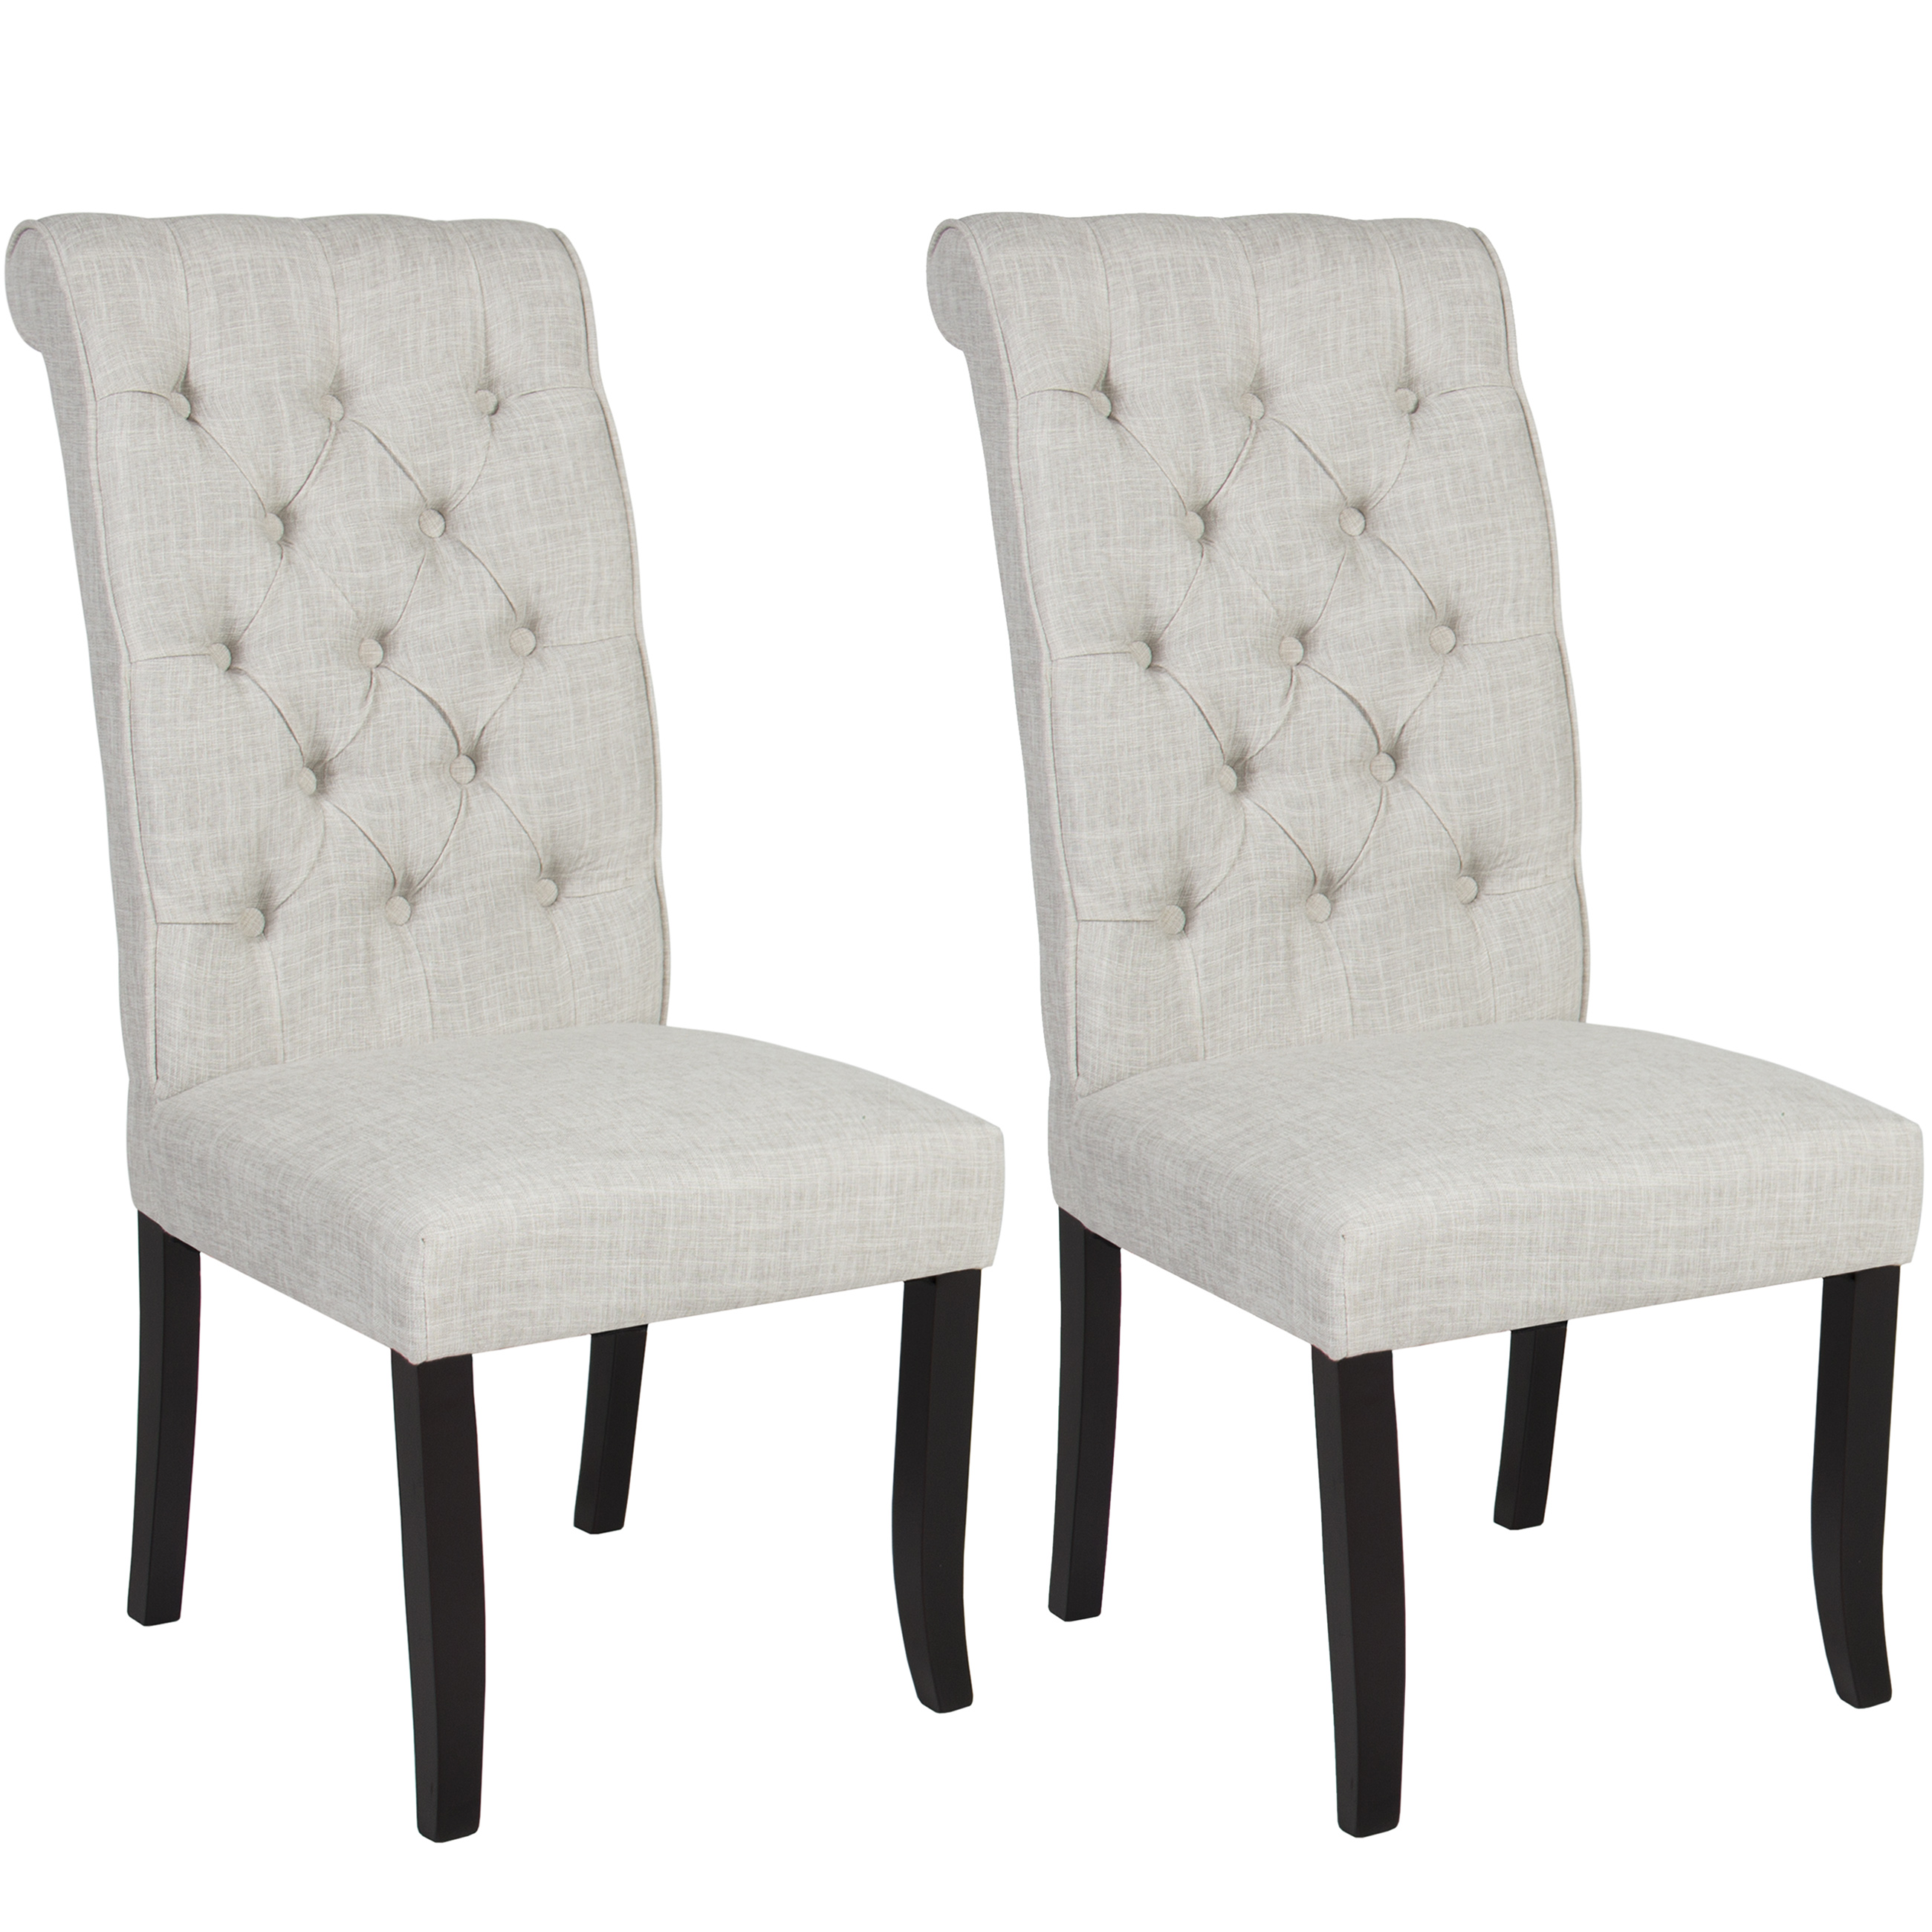 Best Choice Products Furniture Set Of 2 Tufted Parsons Dining Chair Set Modern Wood Linen Side Chair by